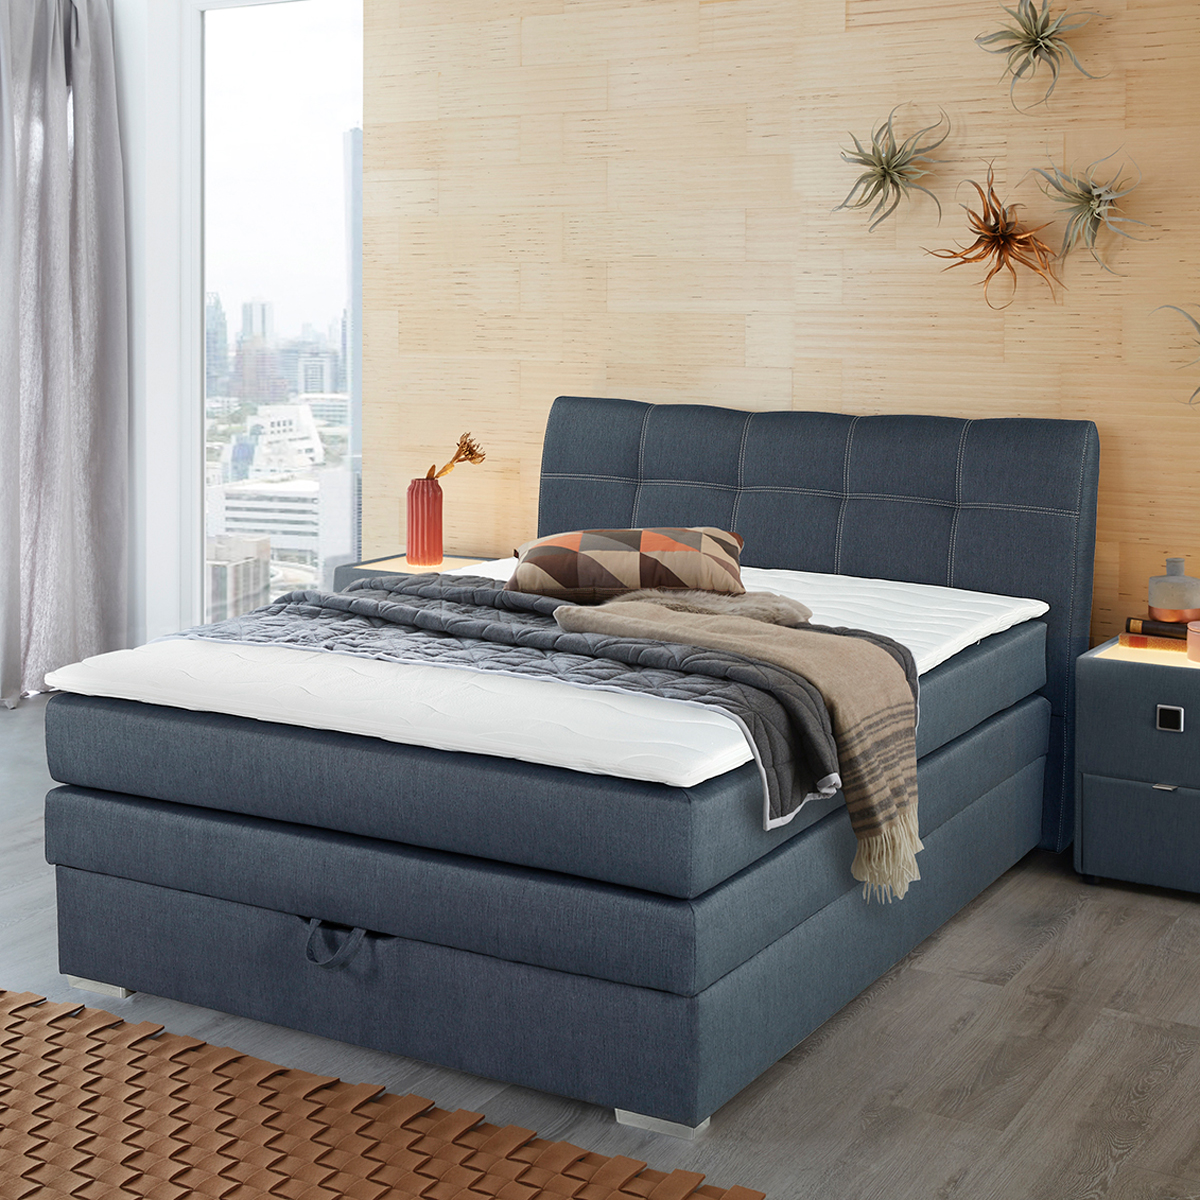 Boxspringbett Amelie 140 In Graublau Mit Bettkasten Topper